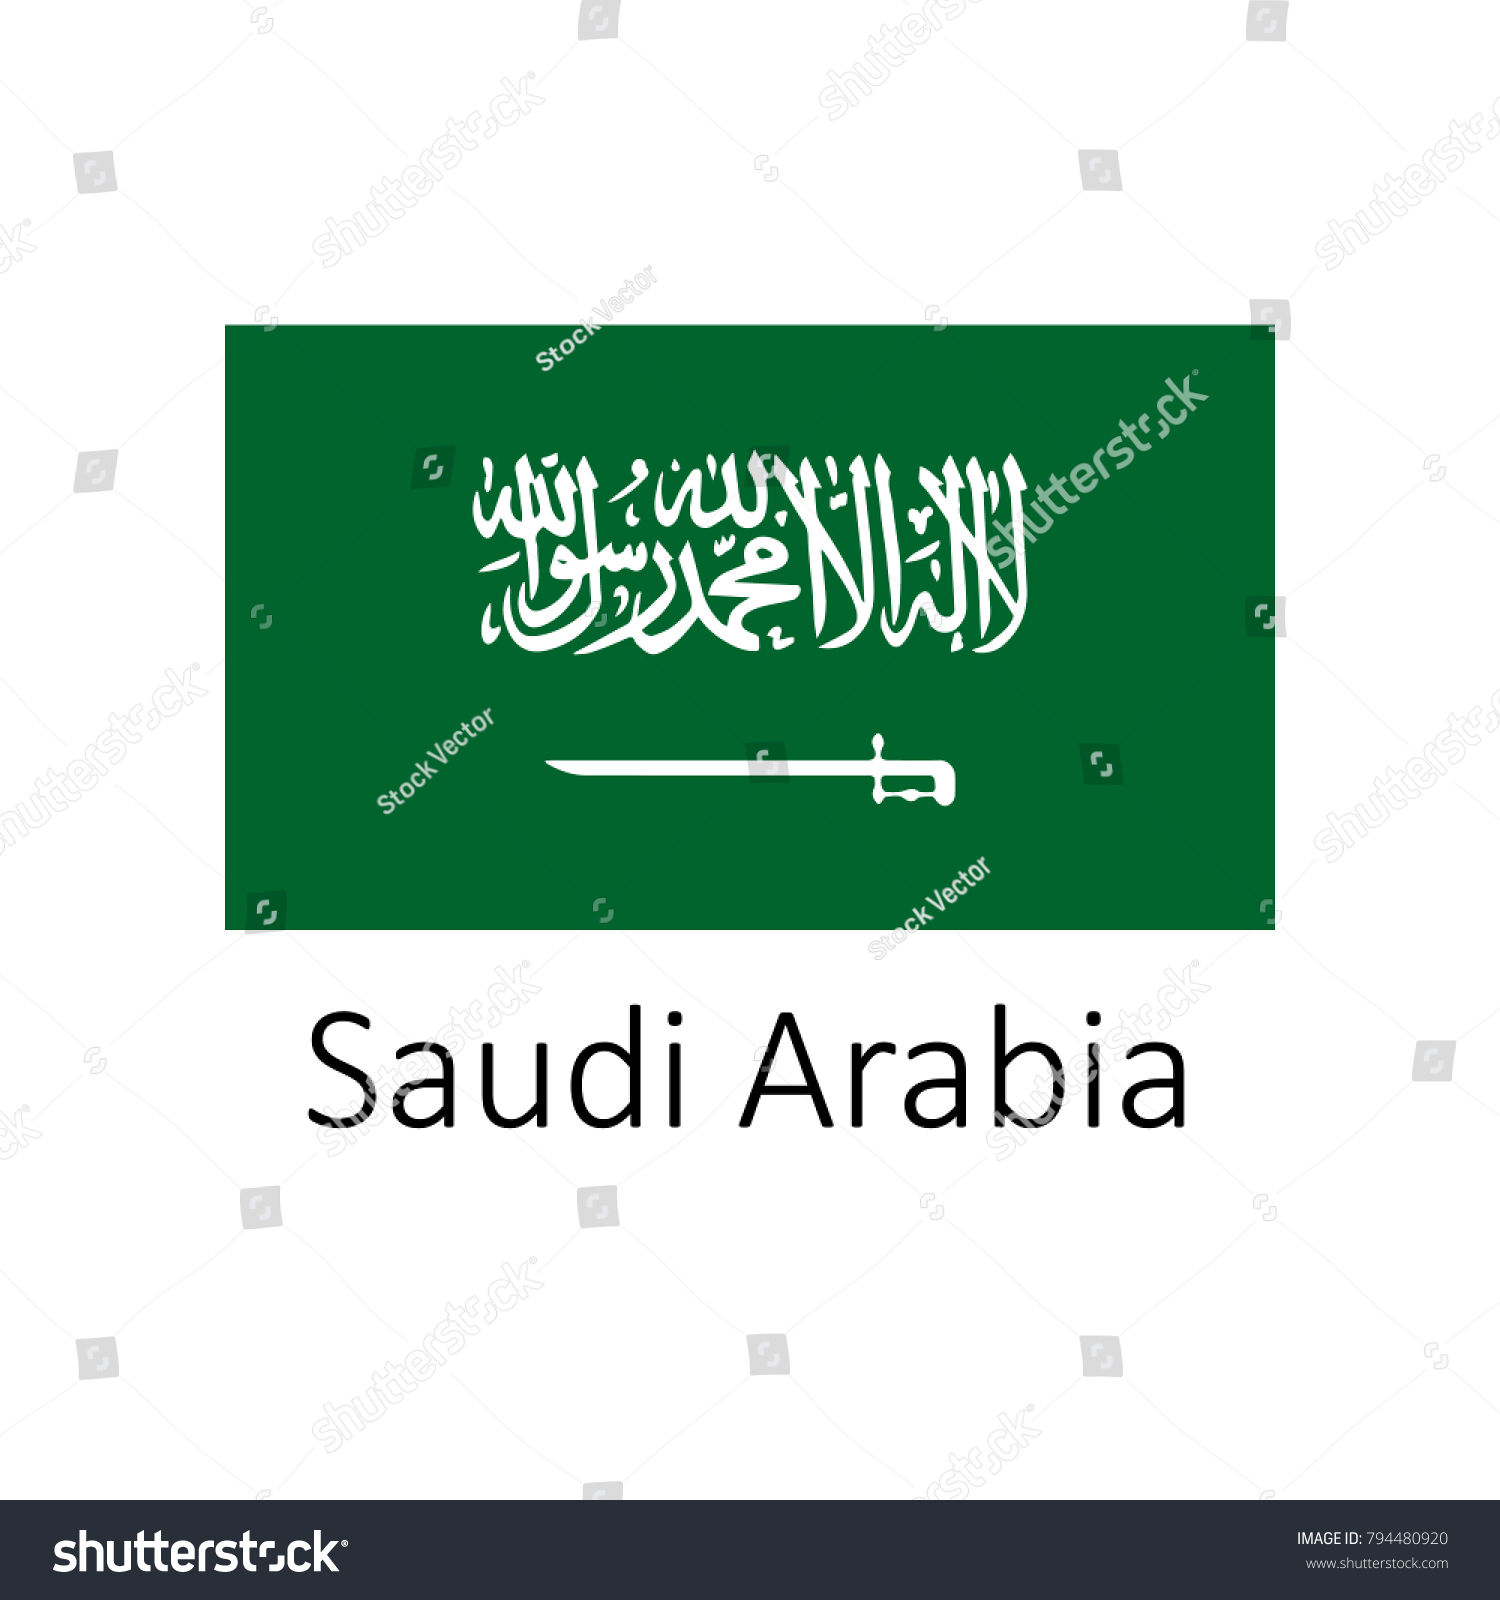 Image result for Saudi name